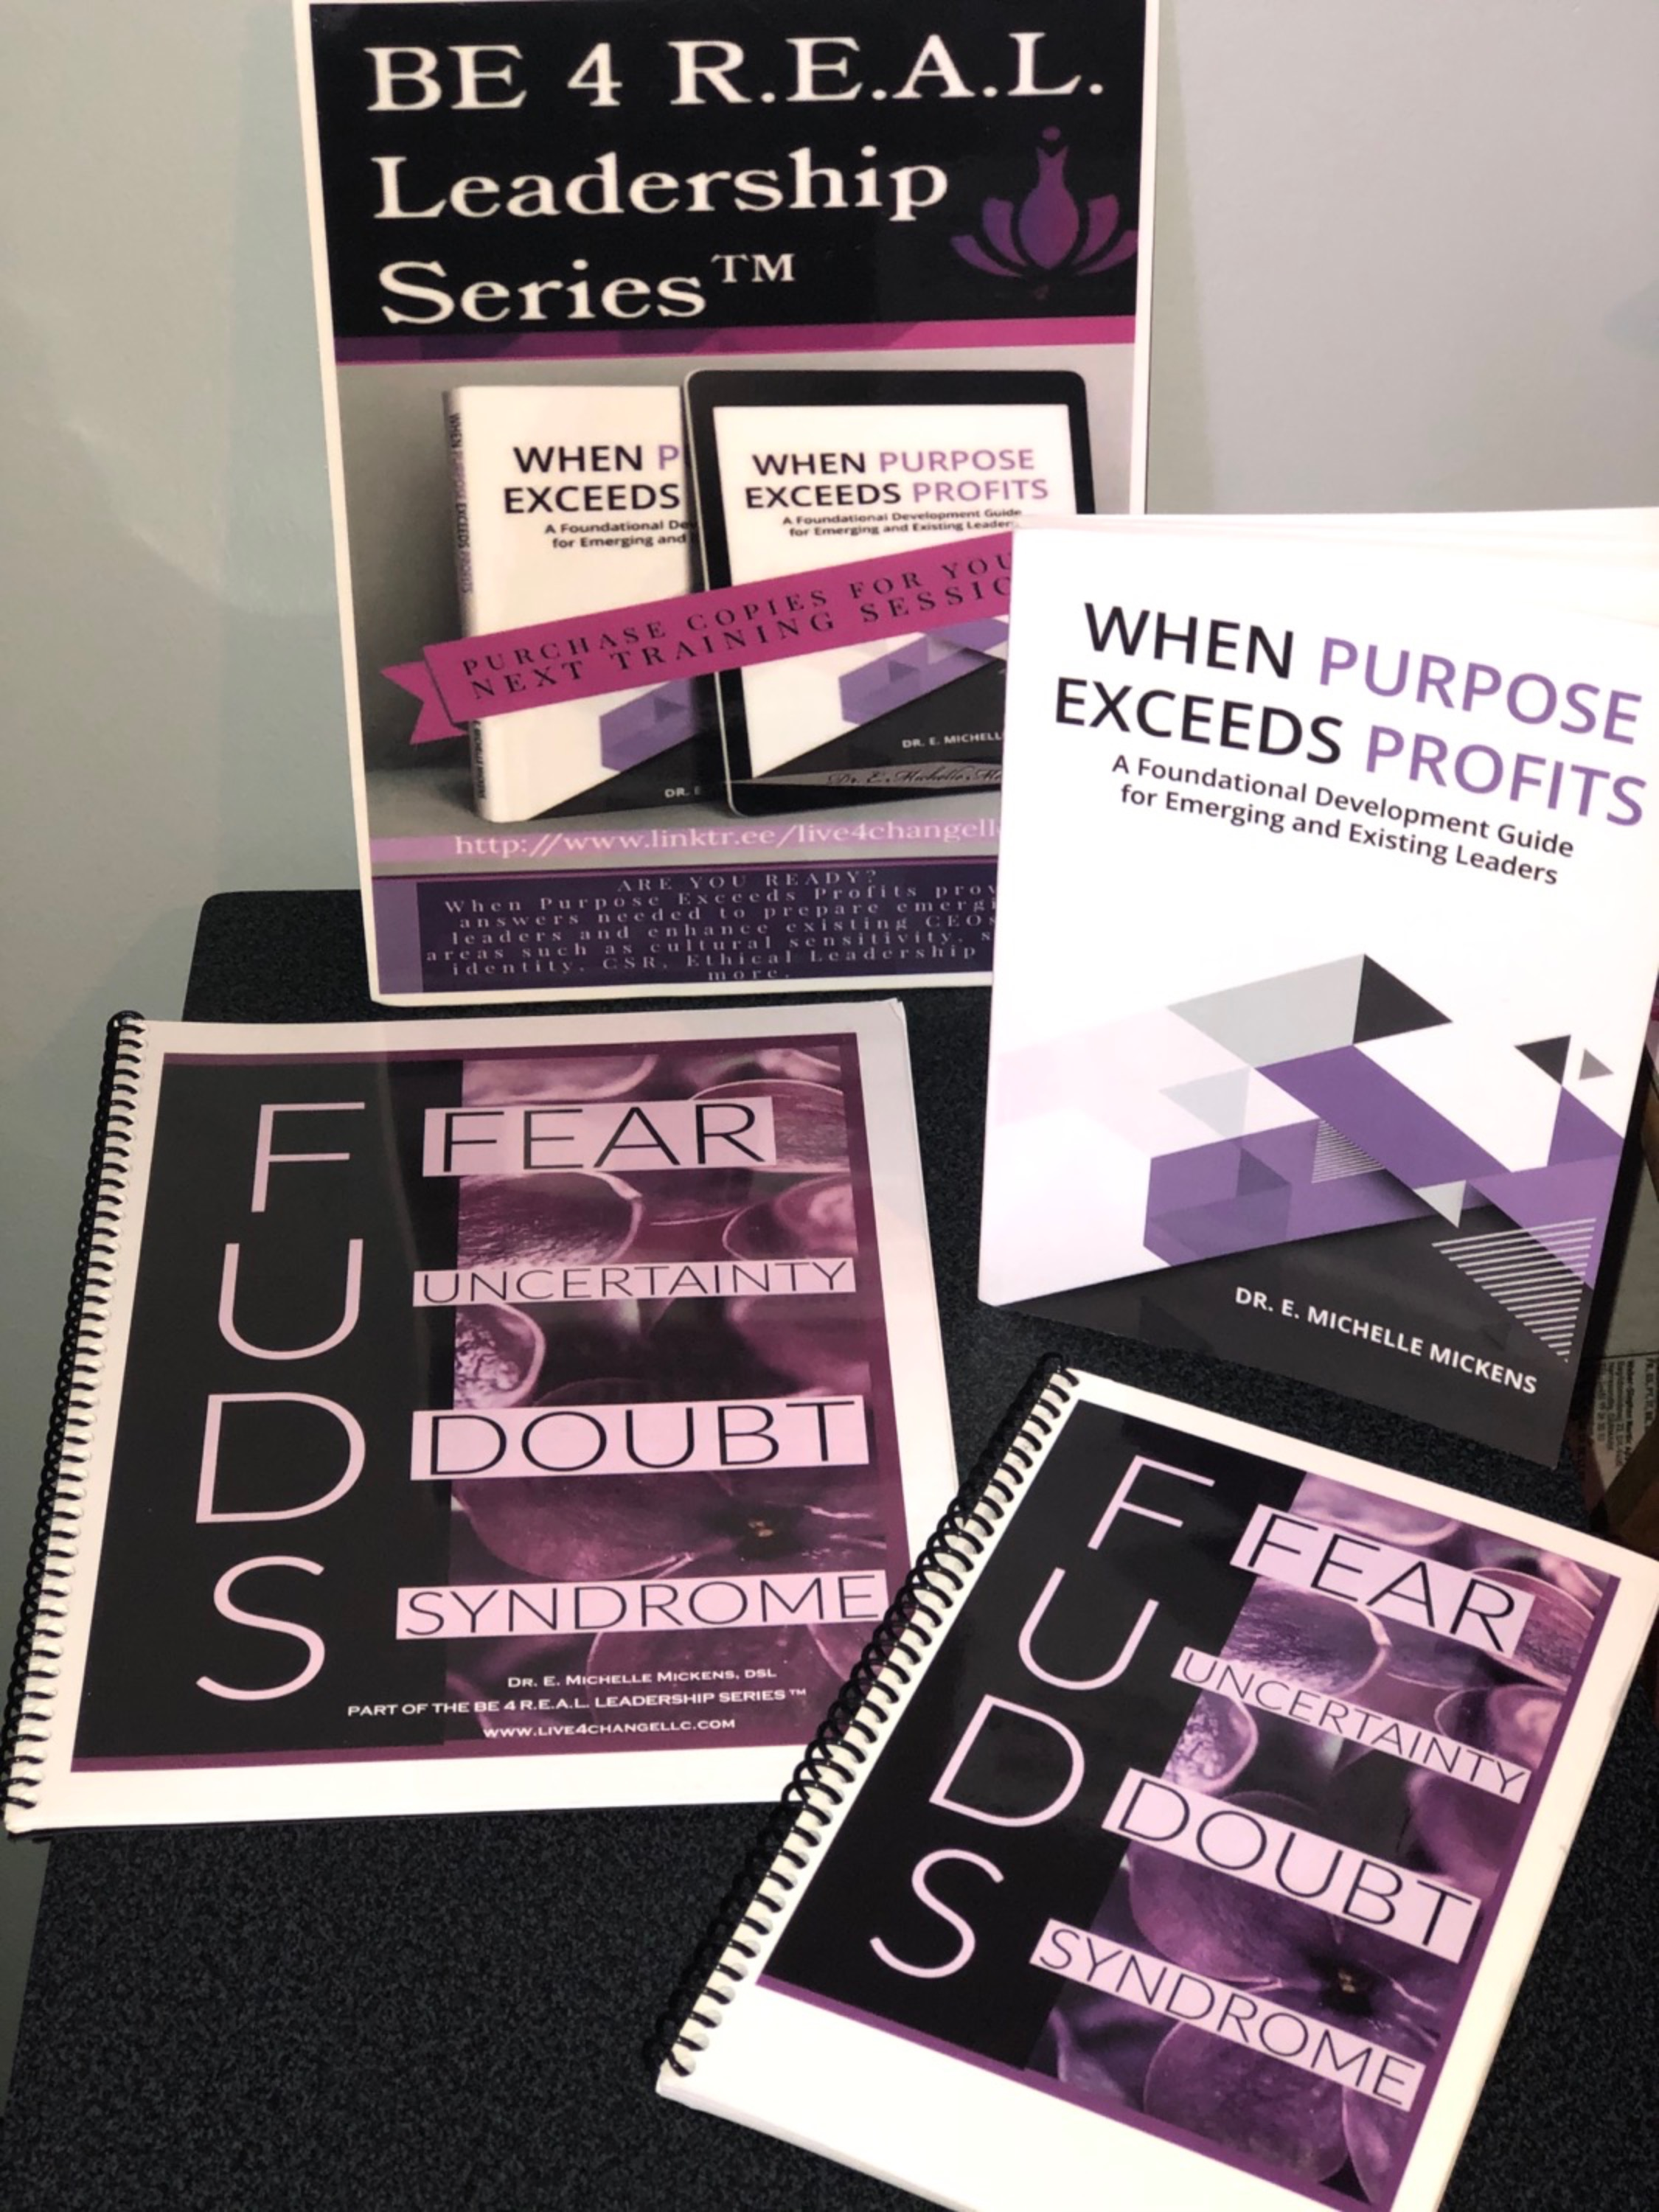 BUST THE F.U.D.S. (Fear, Uncertainty, & Doubt) SYNDROME